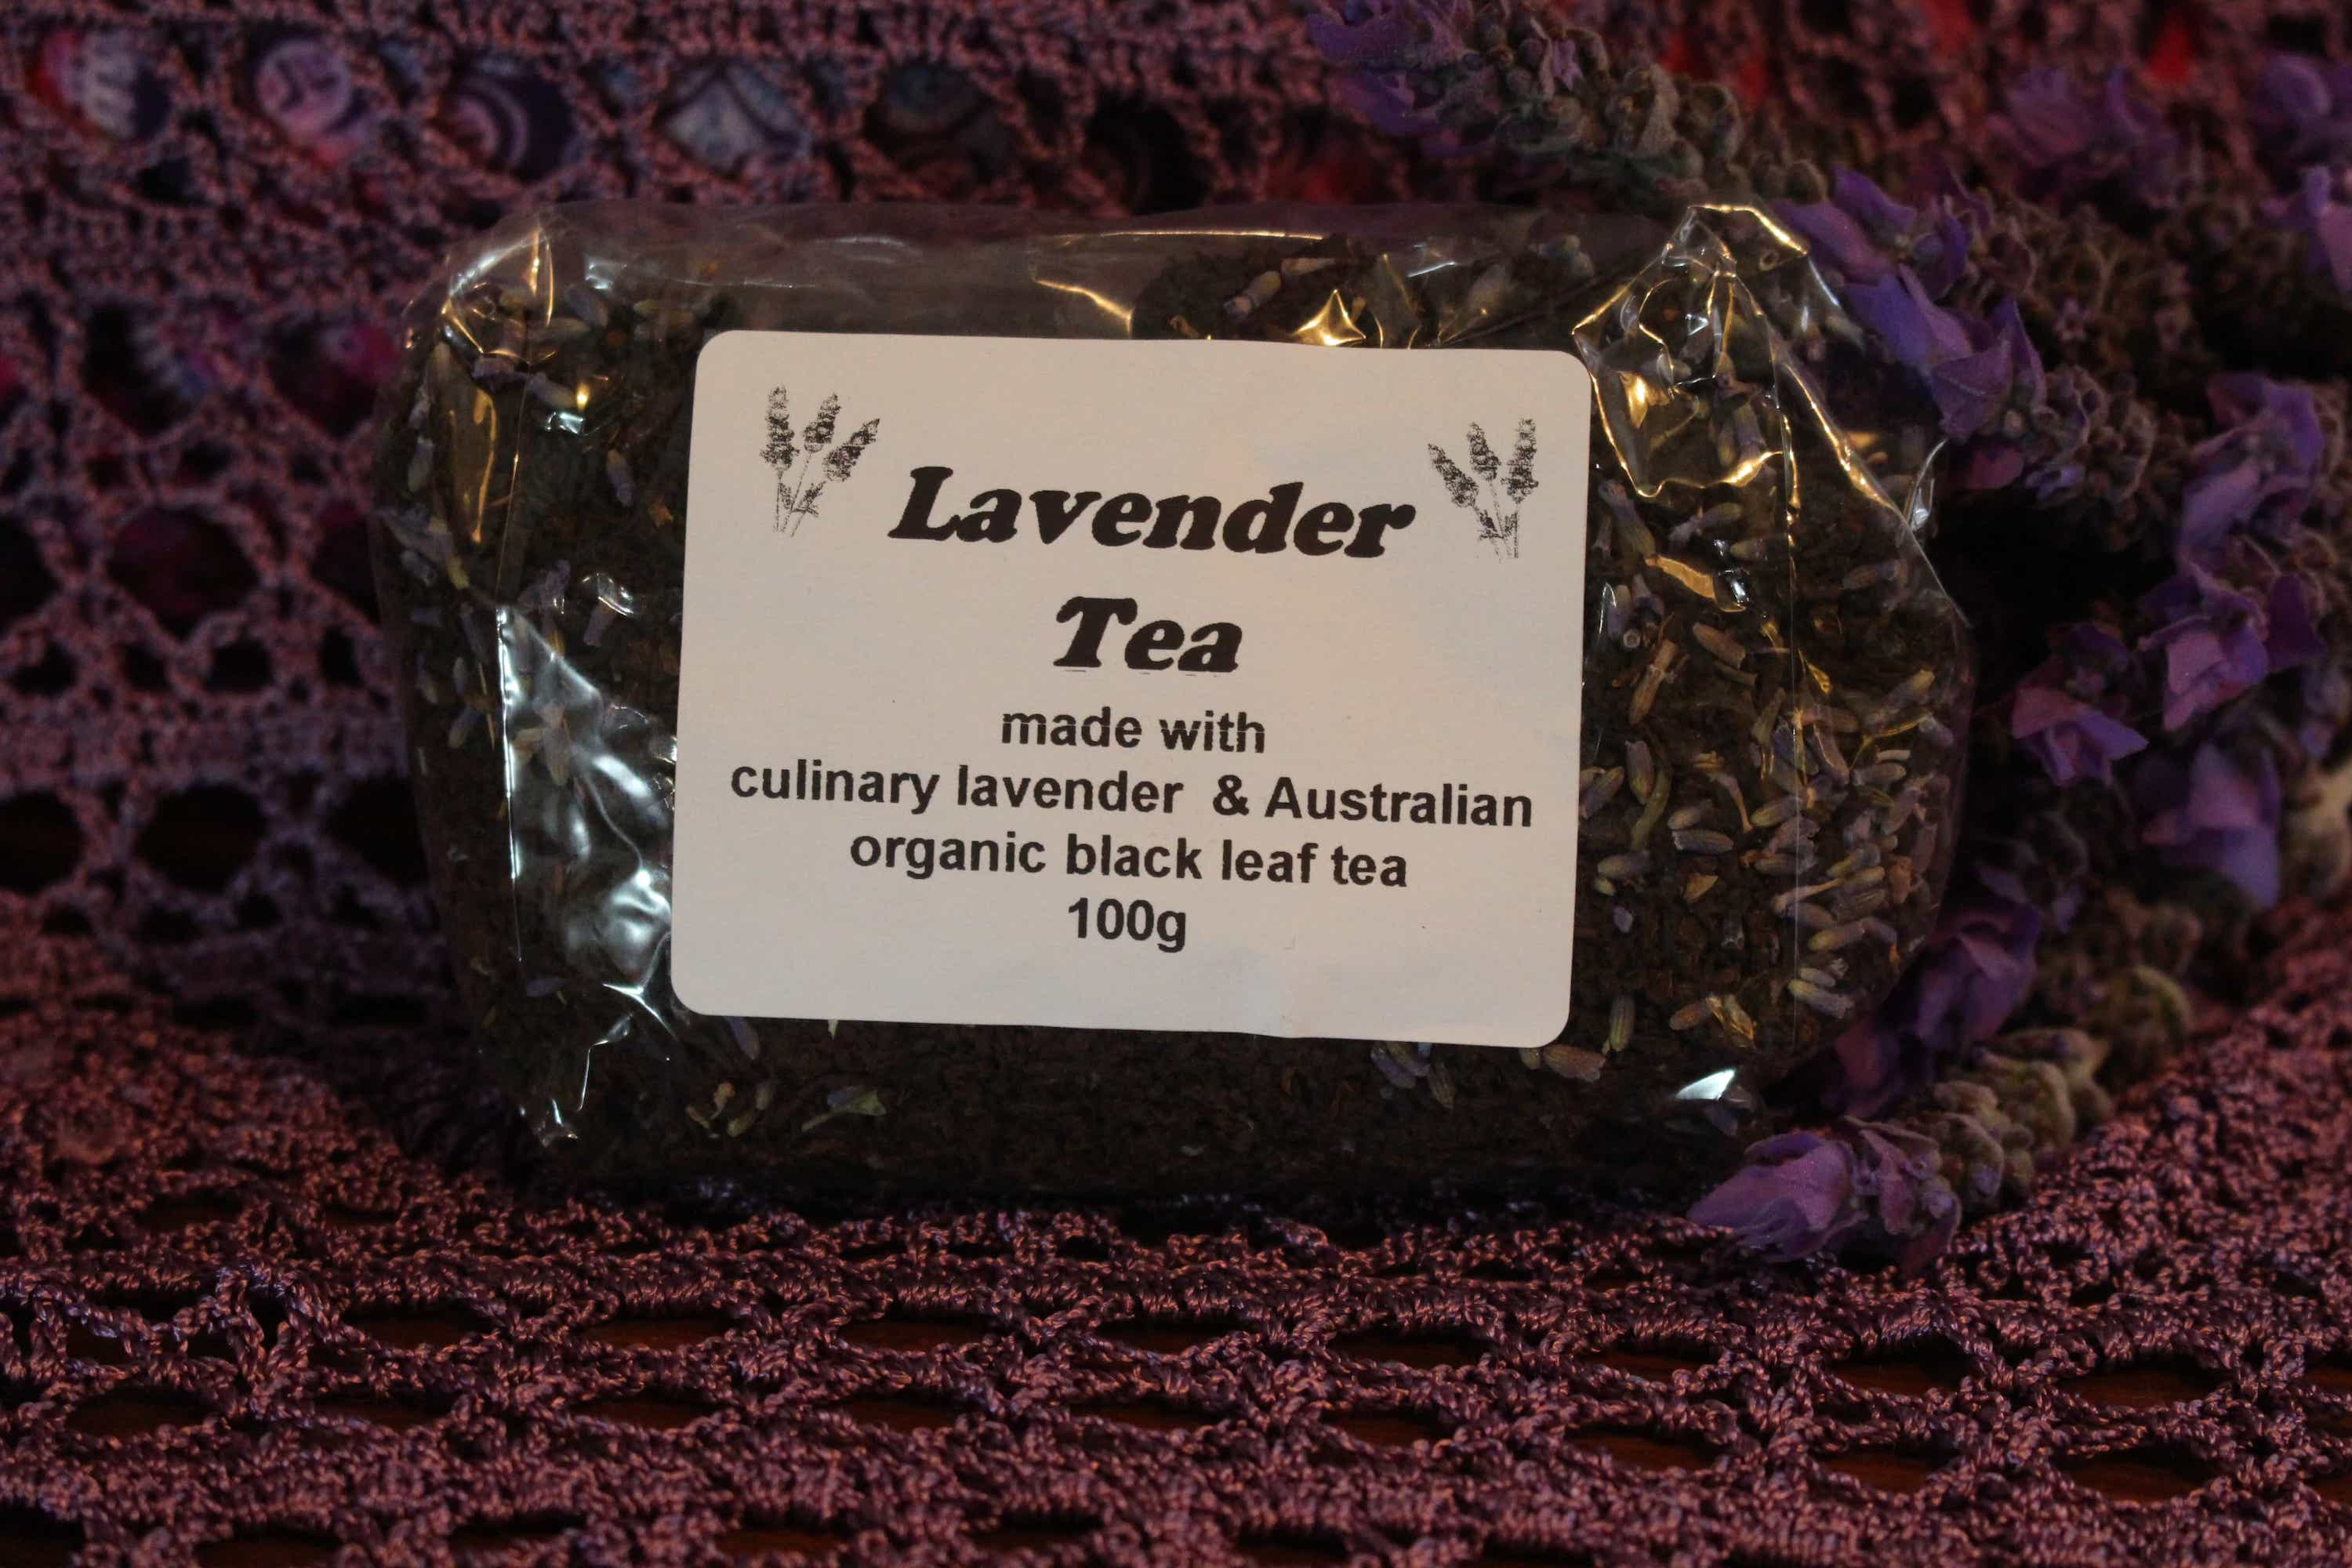 Photograph of an Lavender Tea 100g product